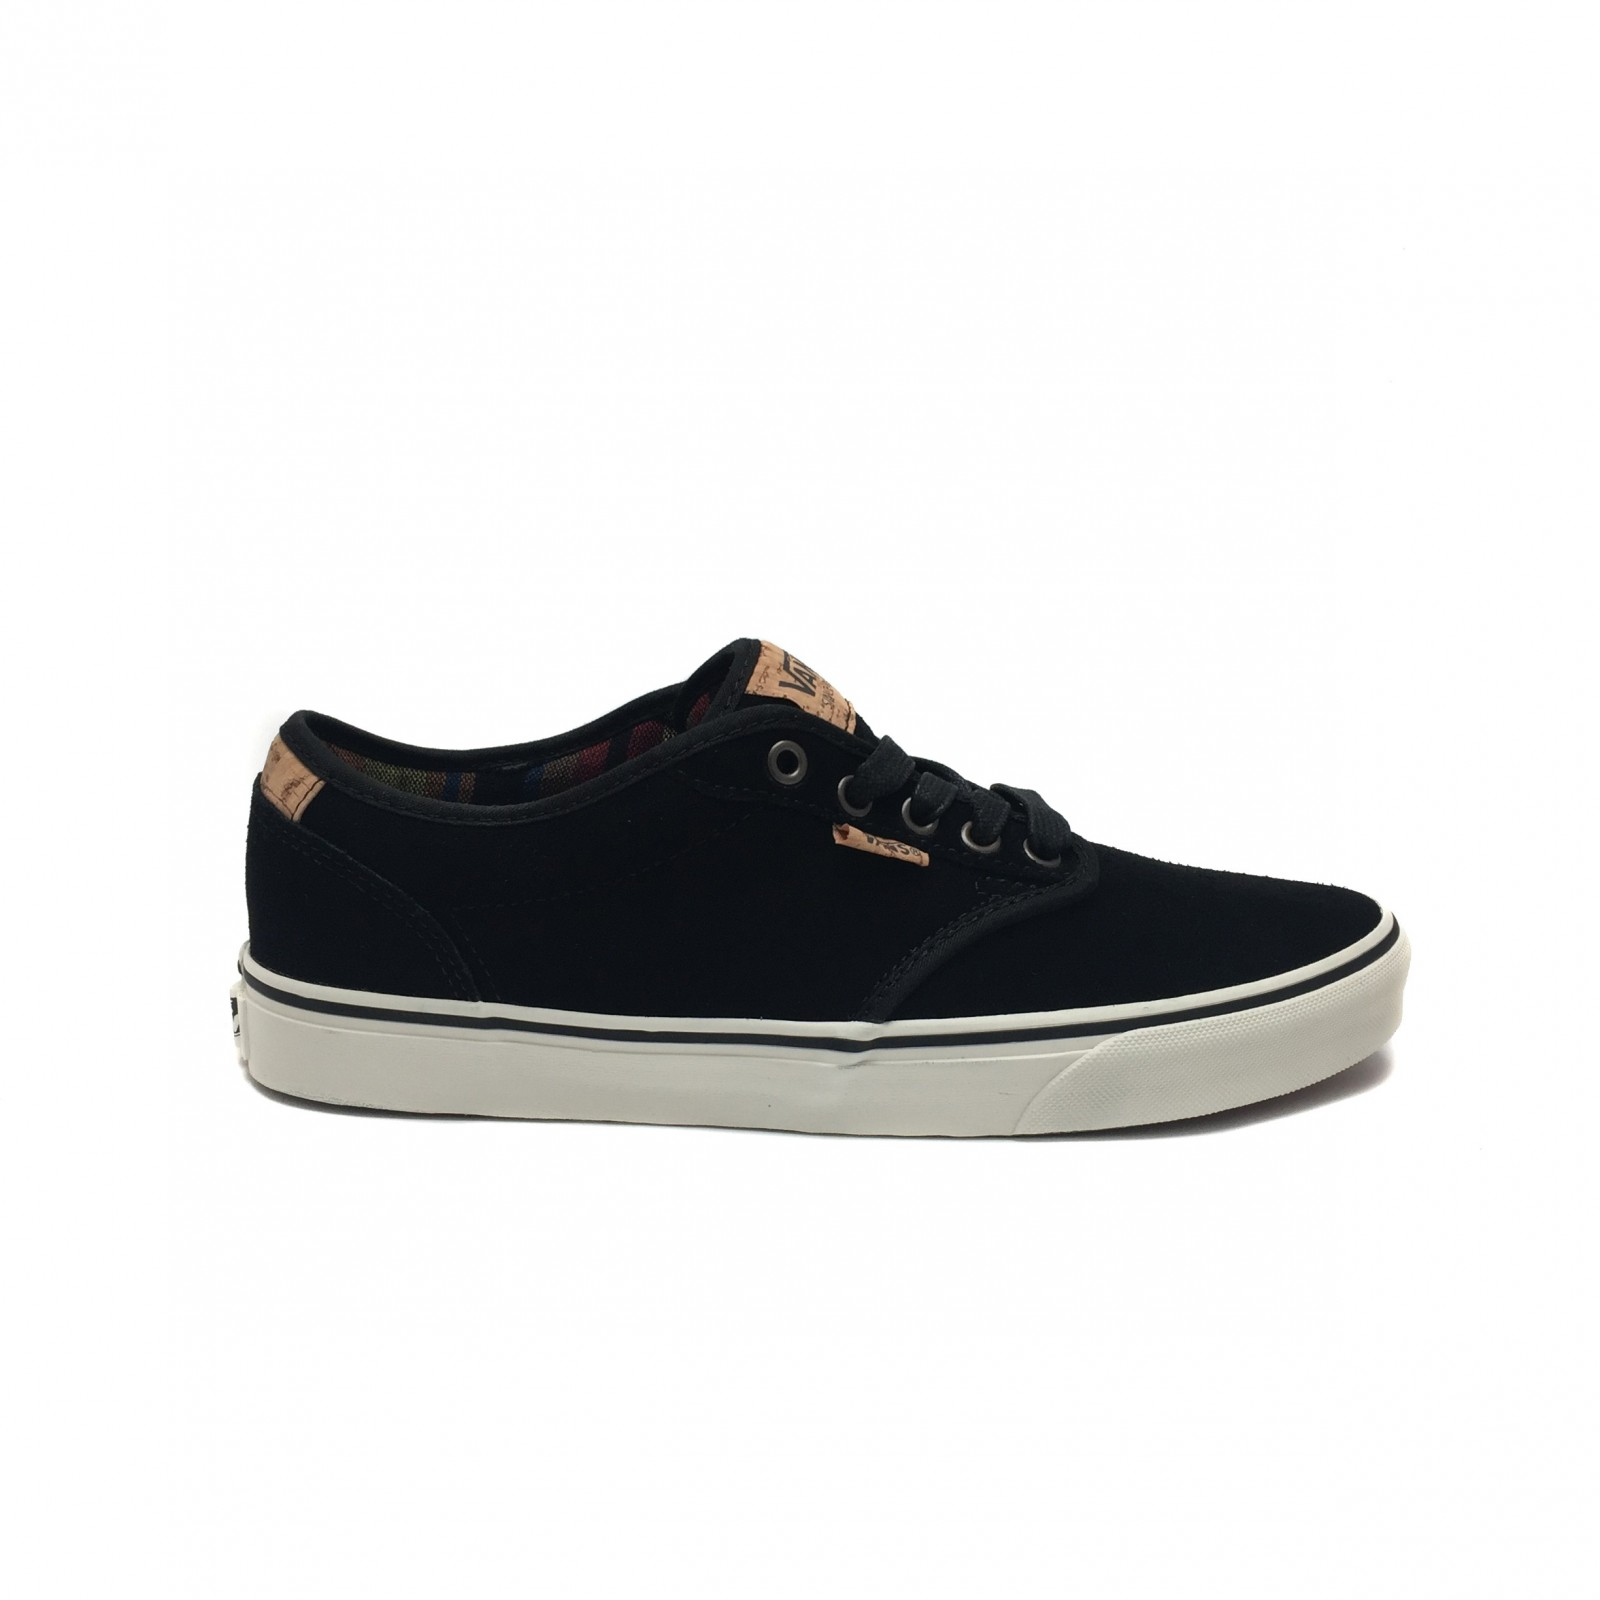 89304612646 Pánské boty Vans M Atwood Deluxe(Suede)Black